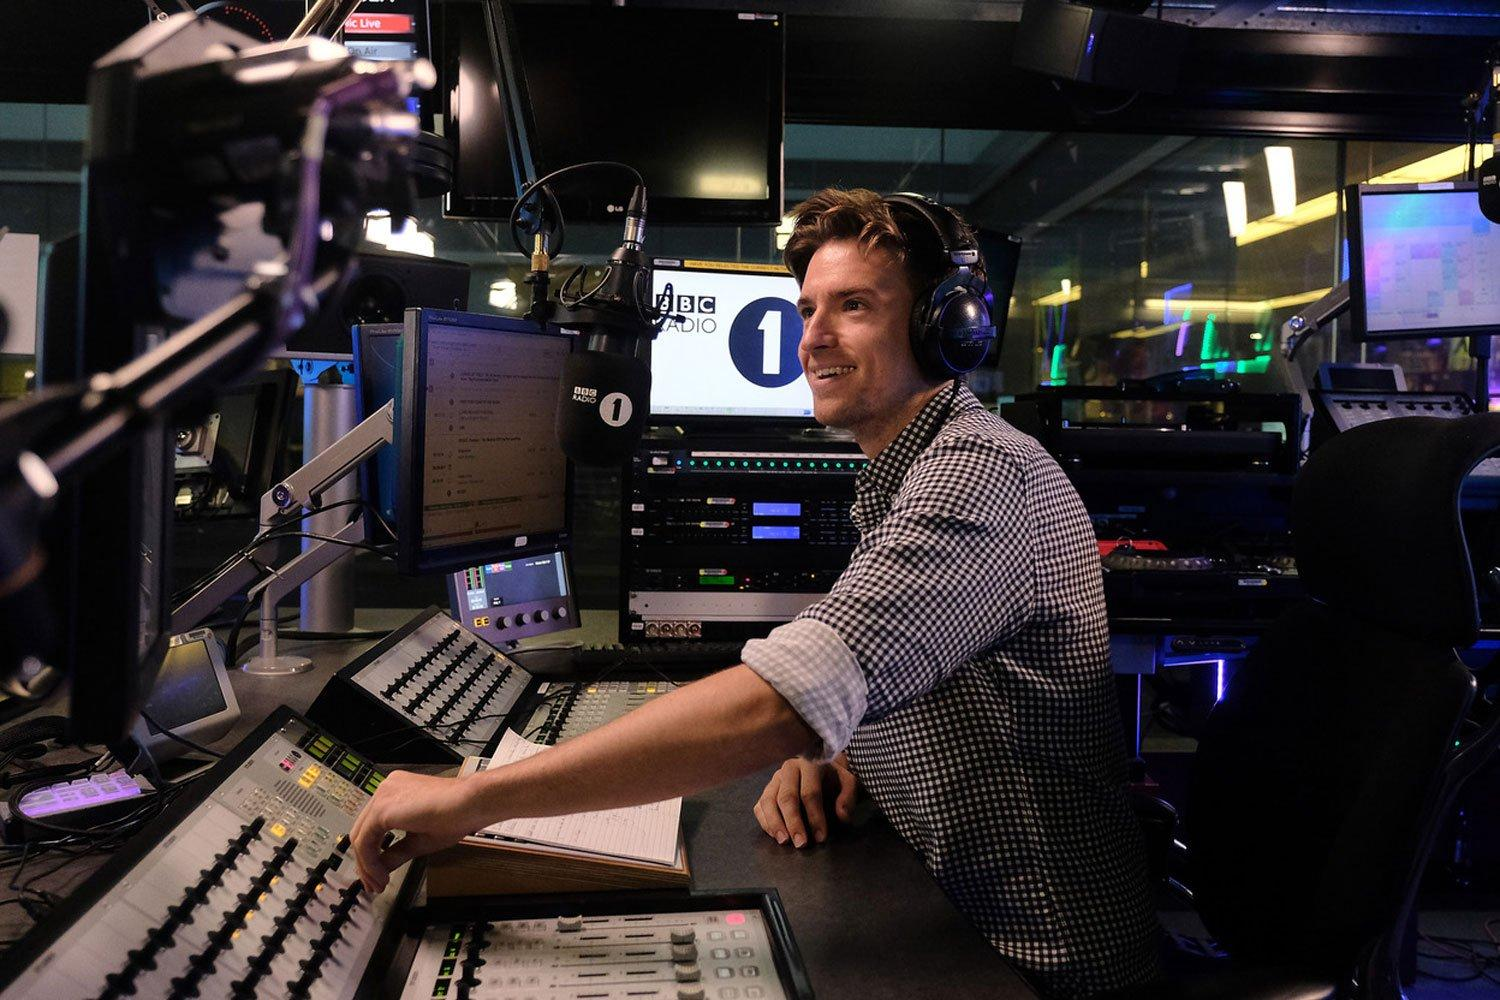 BBC Radio 1: Greg James's Radio 1 Breakfast Show Review: Out With The